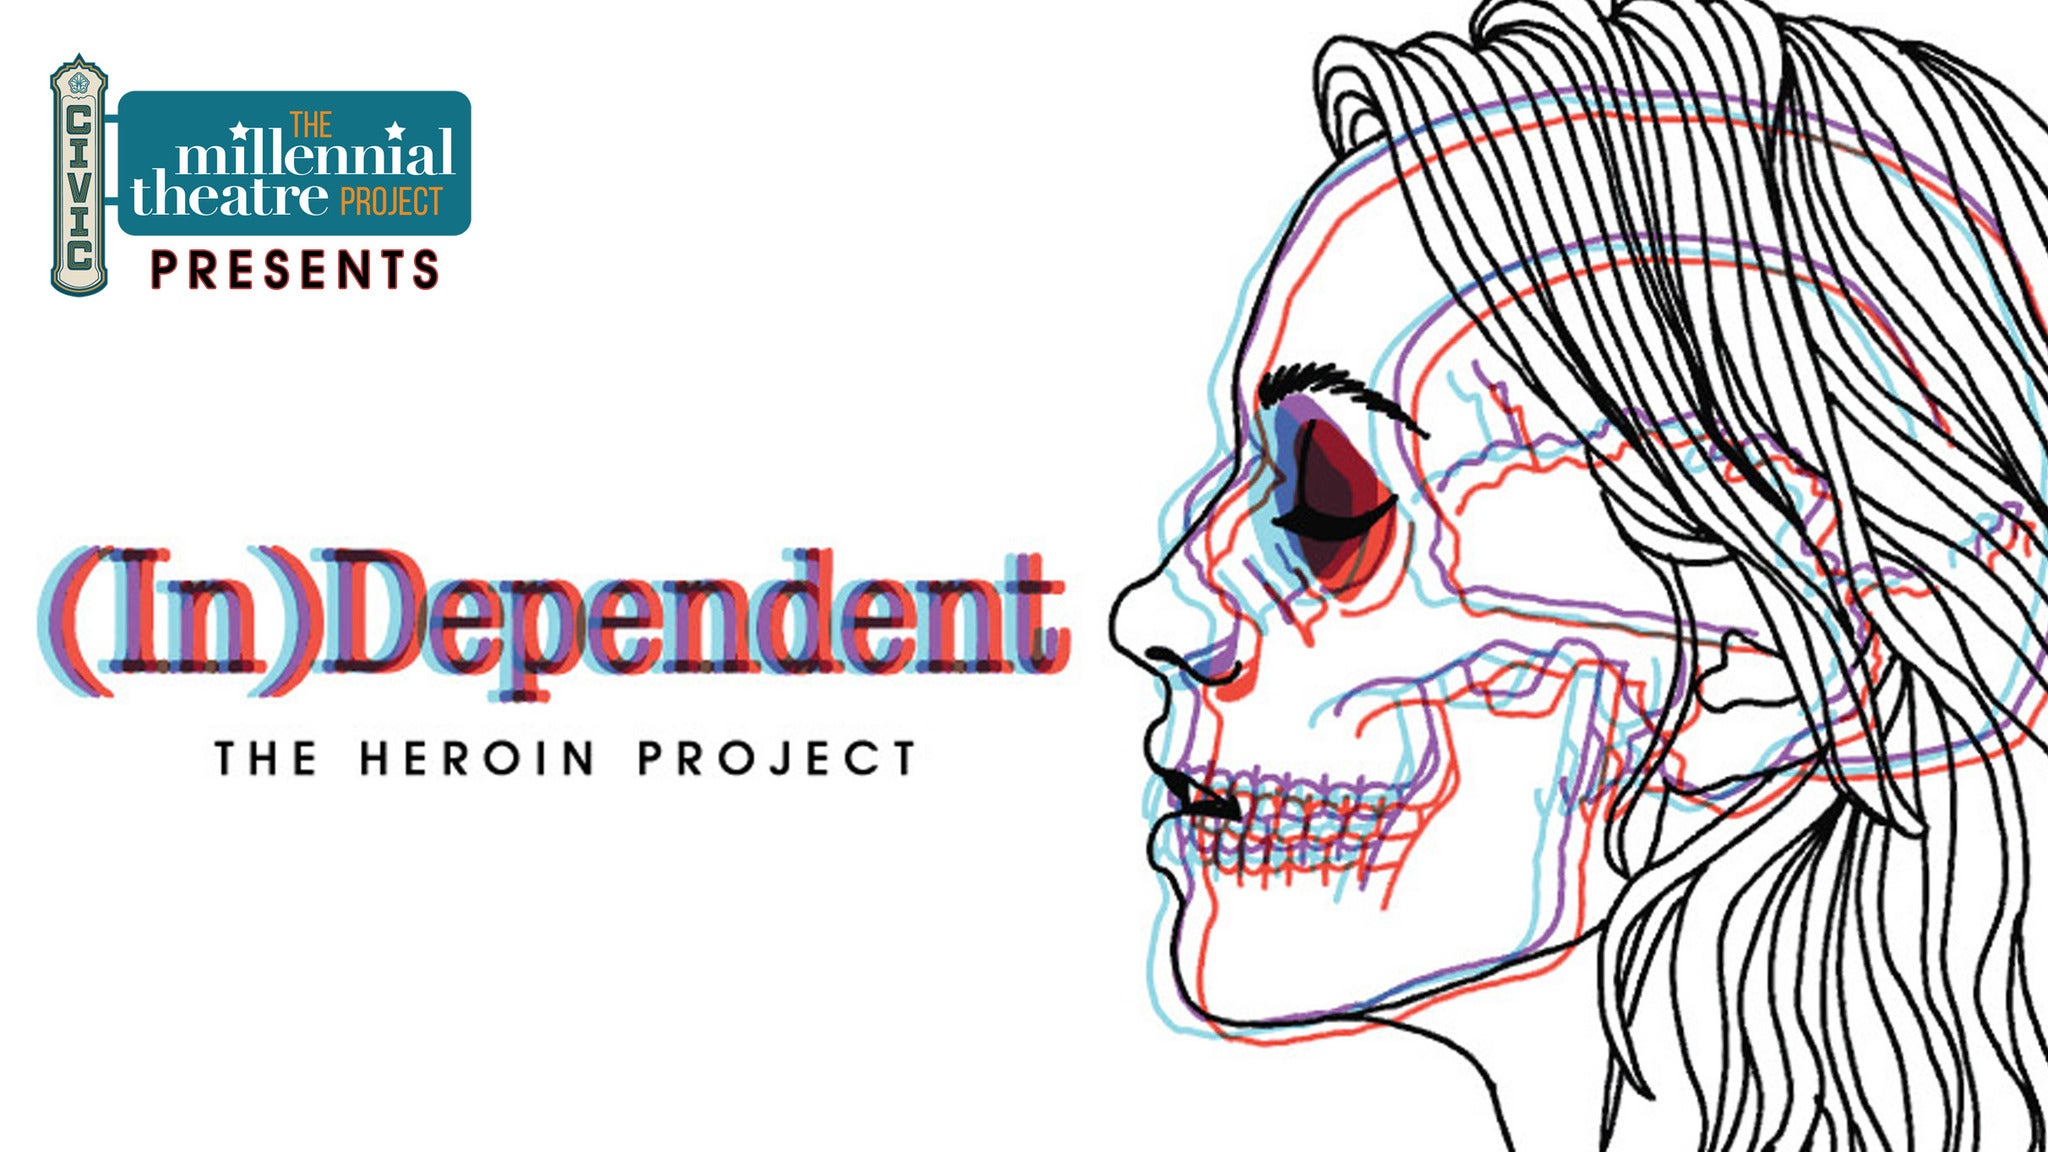 (in)dependent: The Heroin Project at Akron Civic Theatre